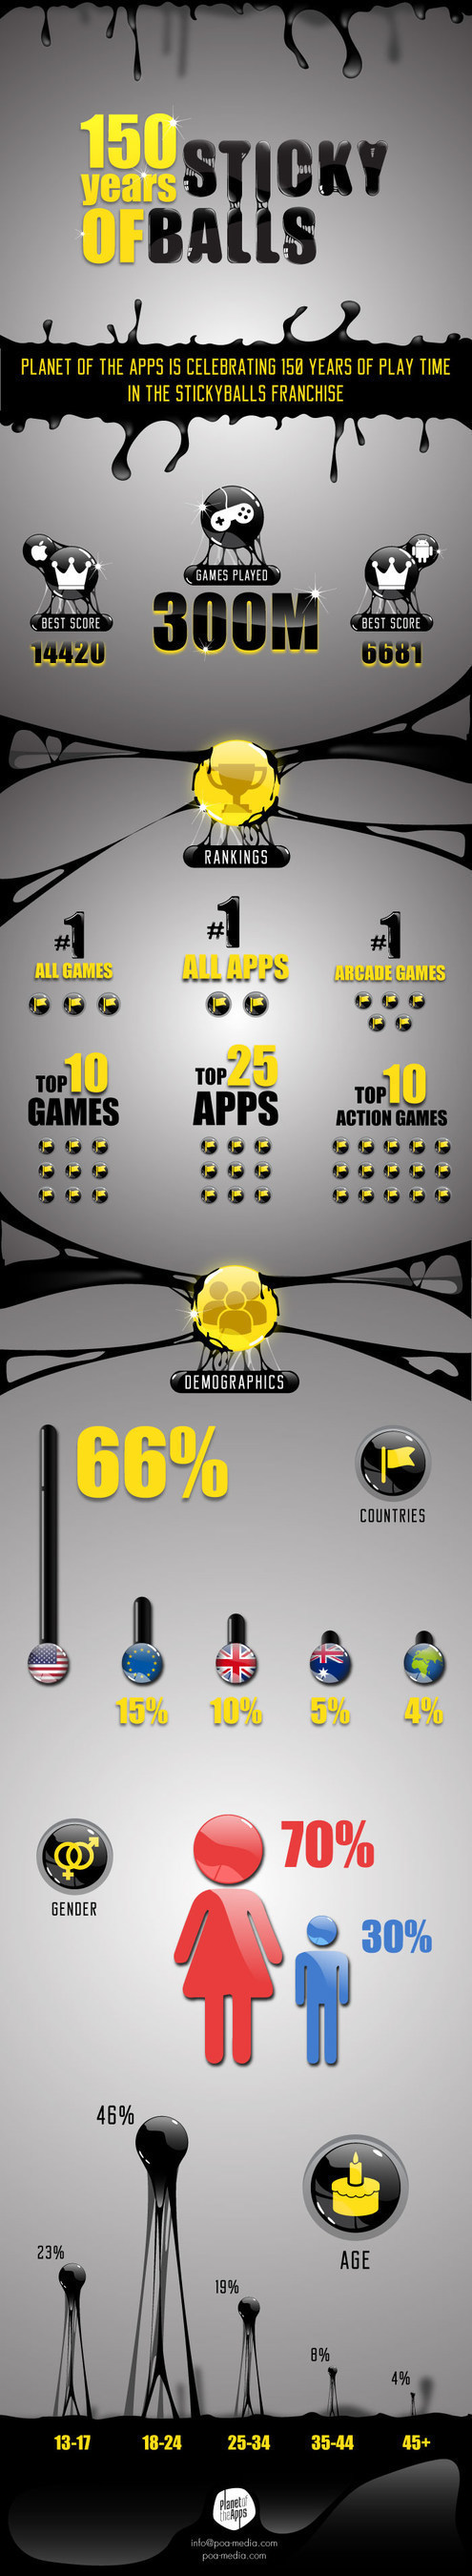 Infographic - 150 Years of StickyBalls - Planet of the Apps